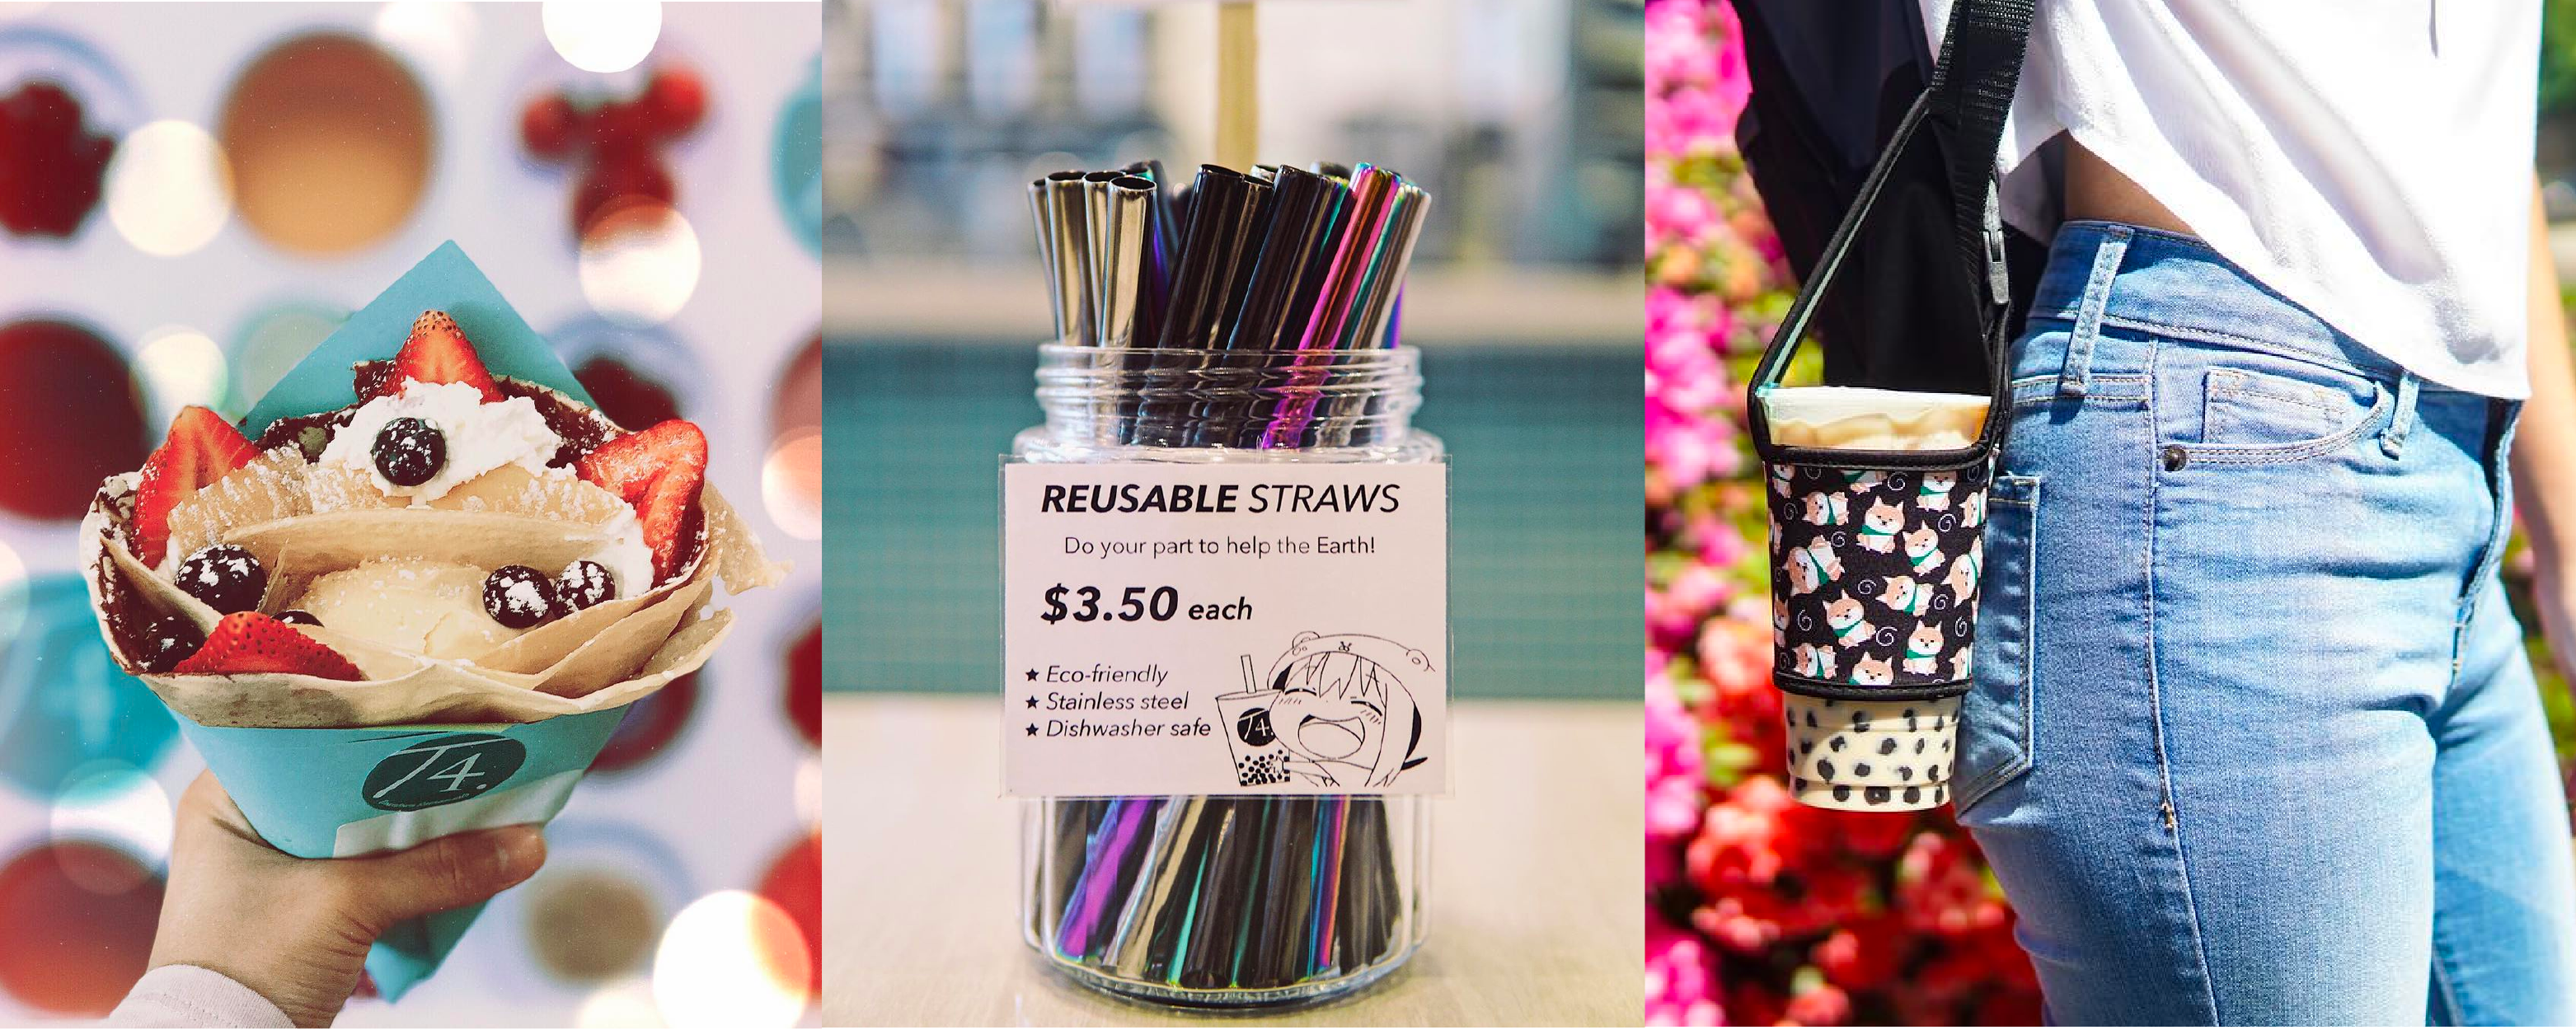 Reusable Cupholder, reusable stainless steel boba straw, mix fruit ice cream crepe